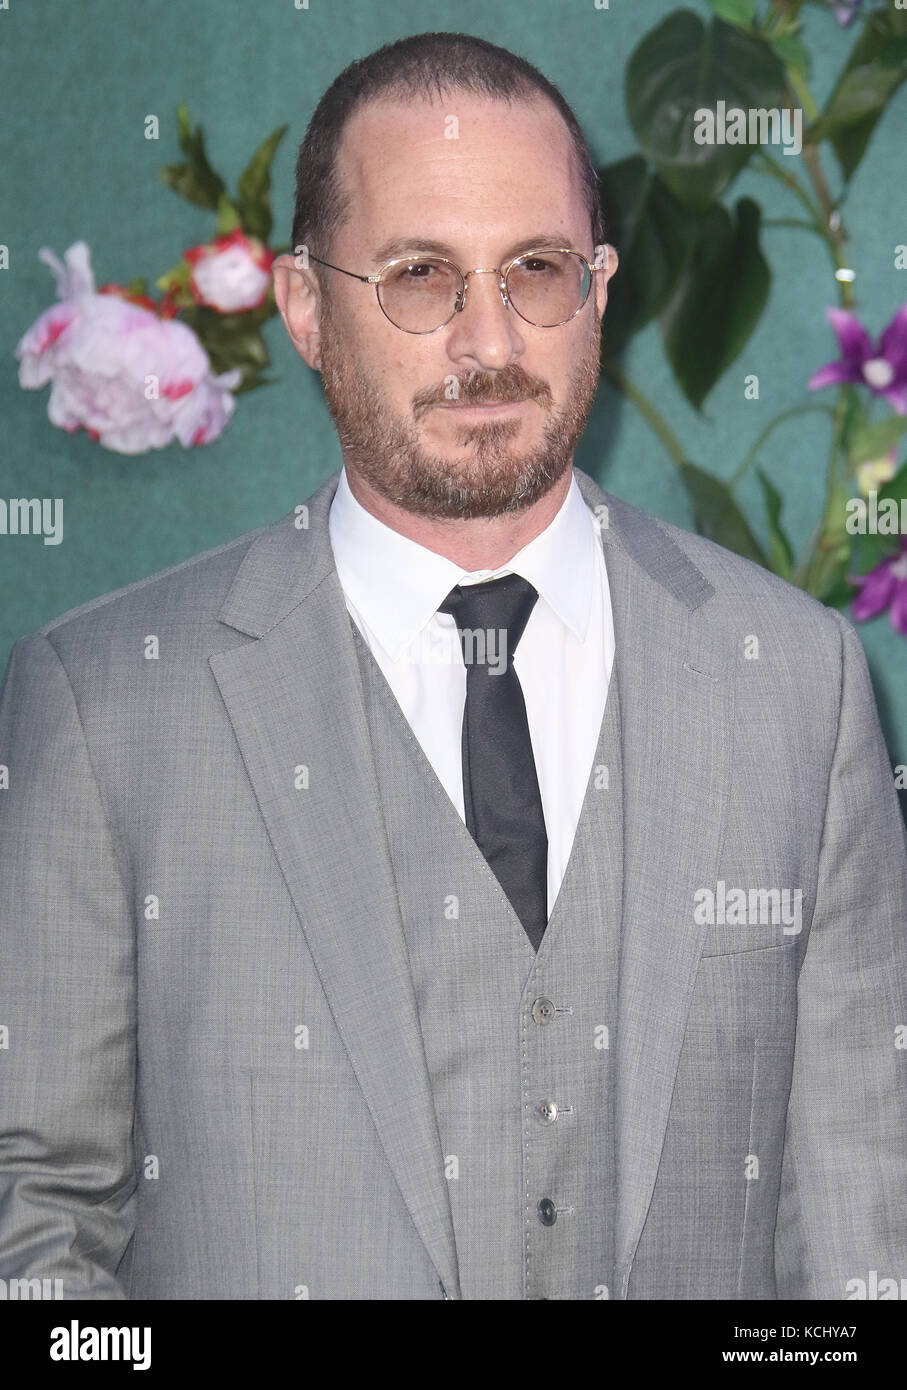 Sep 06, 2017 - Darren Aronofsky attending 'Mother!' UK Premiere, Odeon Leicester Square in London, England, - Stock Image